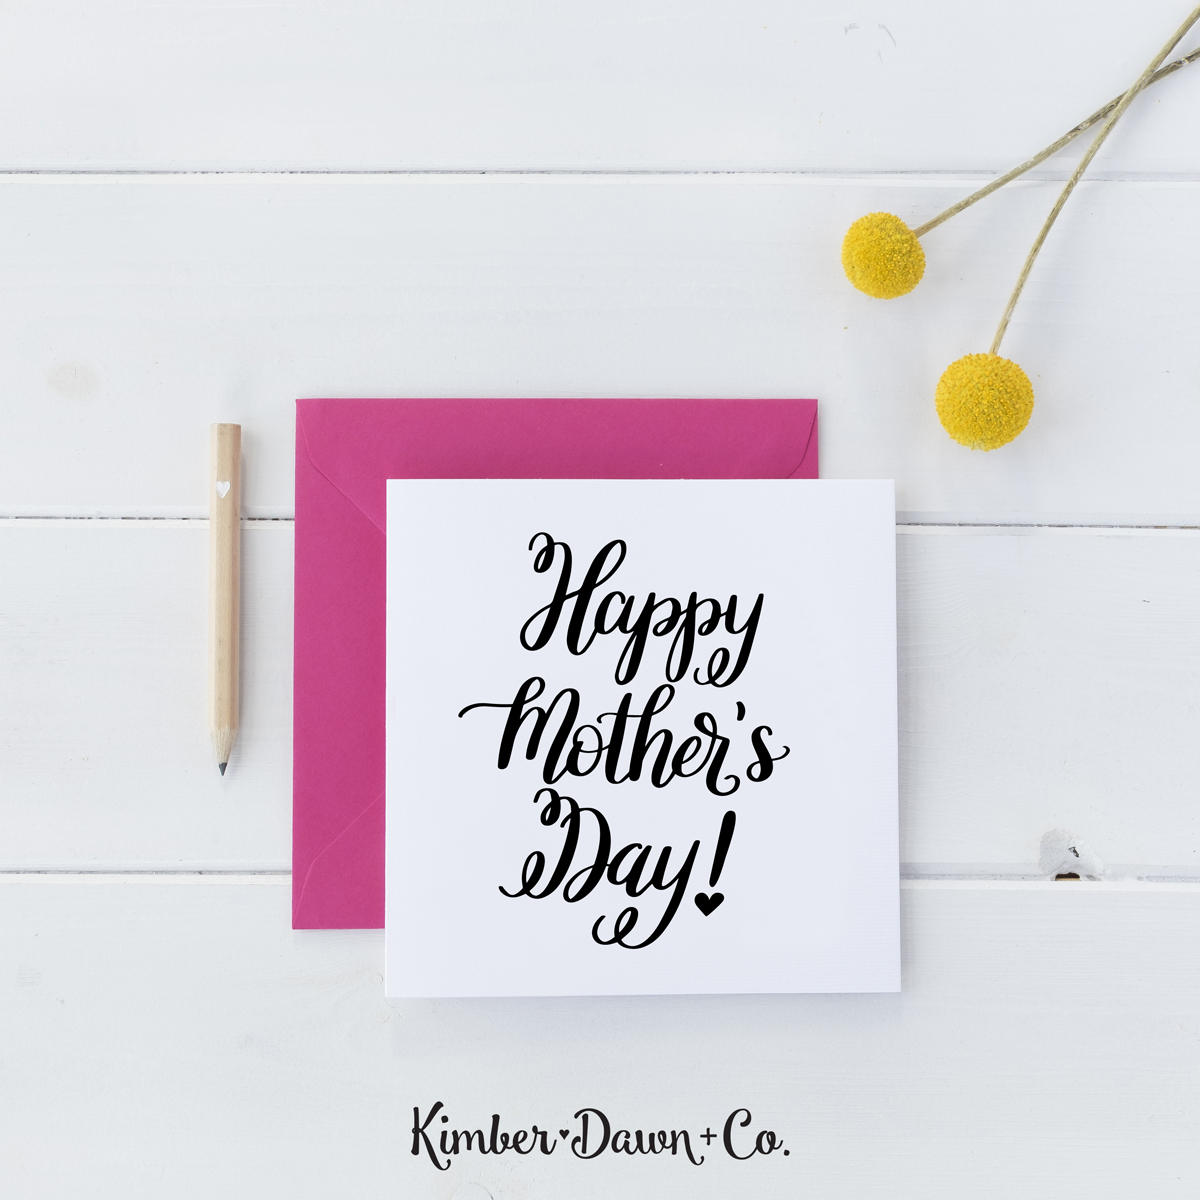 Free Happy mothers day quotes 2016, funny sms, wallpaper, images, pictures, gift ideas 1,674 likes. Hand Lettered Happy Mother S Day Free Svg Cut File SVG, PNG, EPS, DXF File